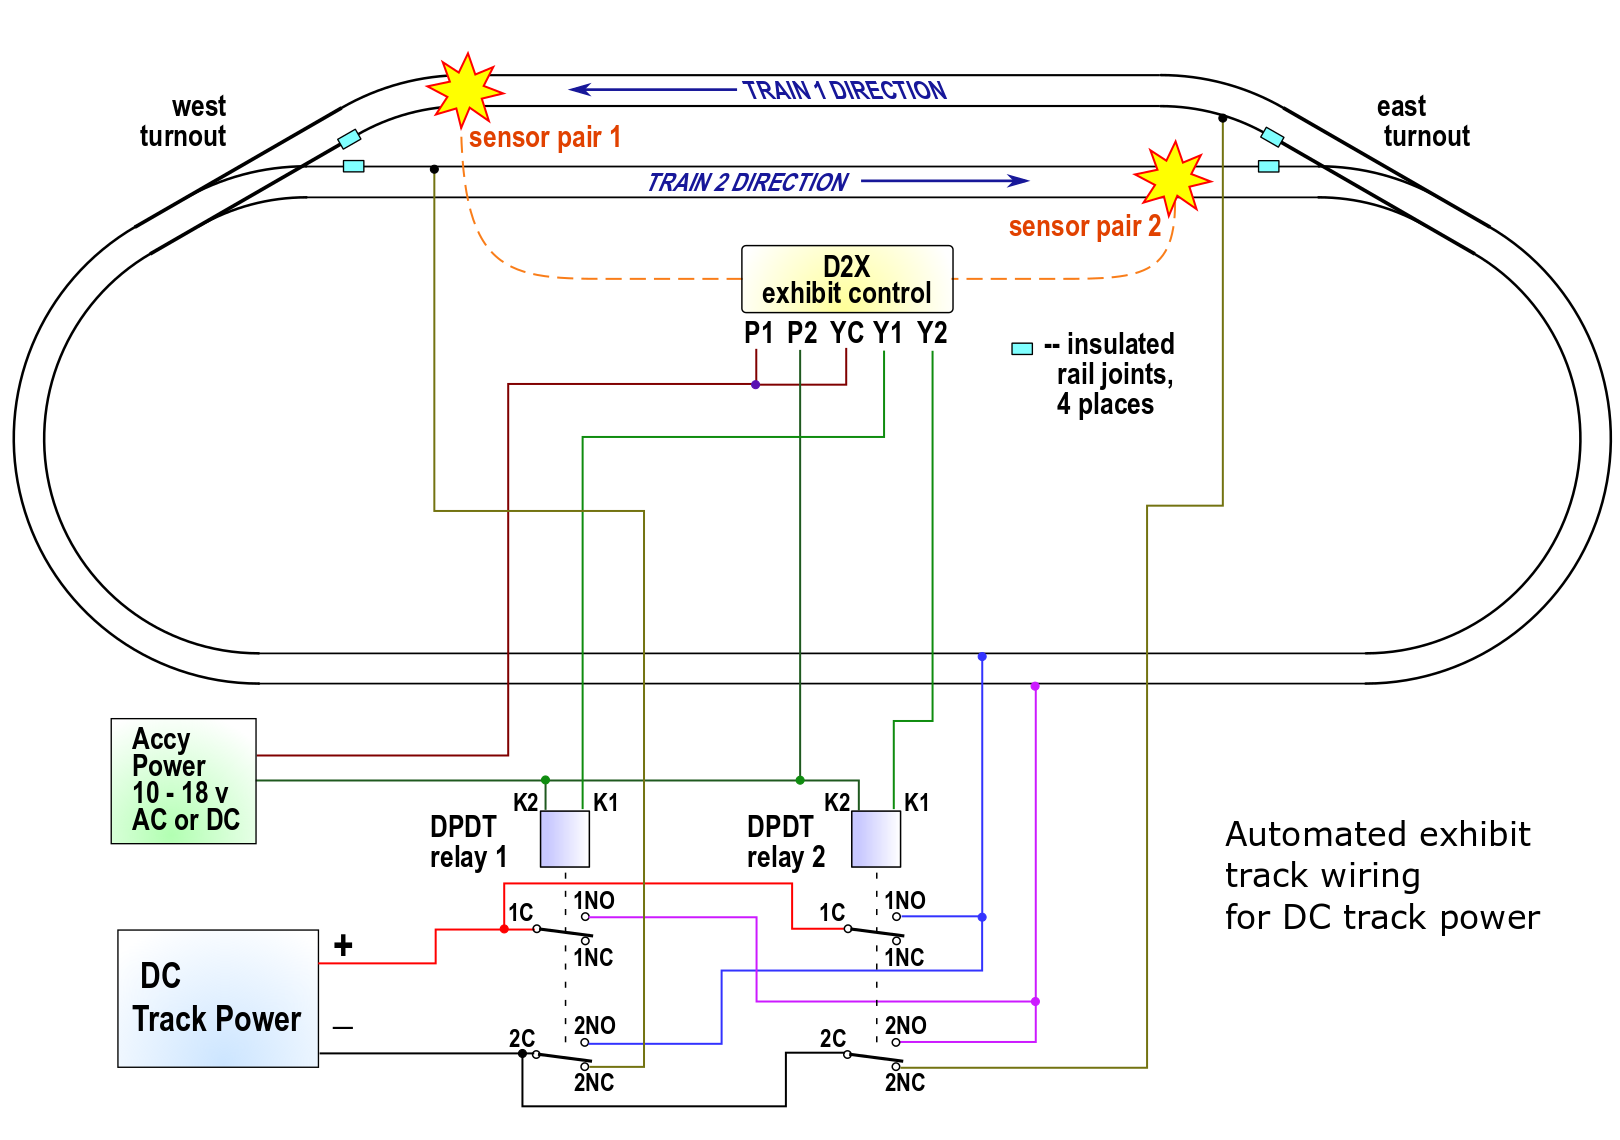 loop wiring diagram for DC